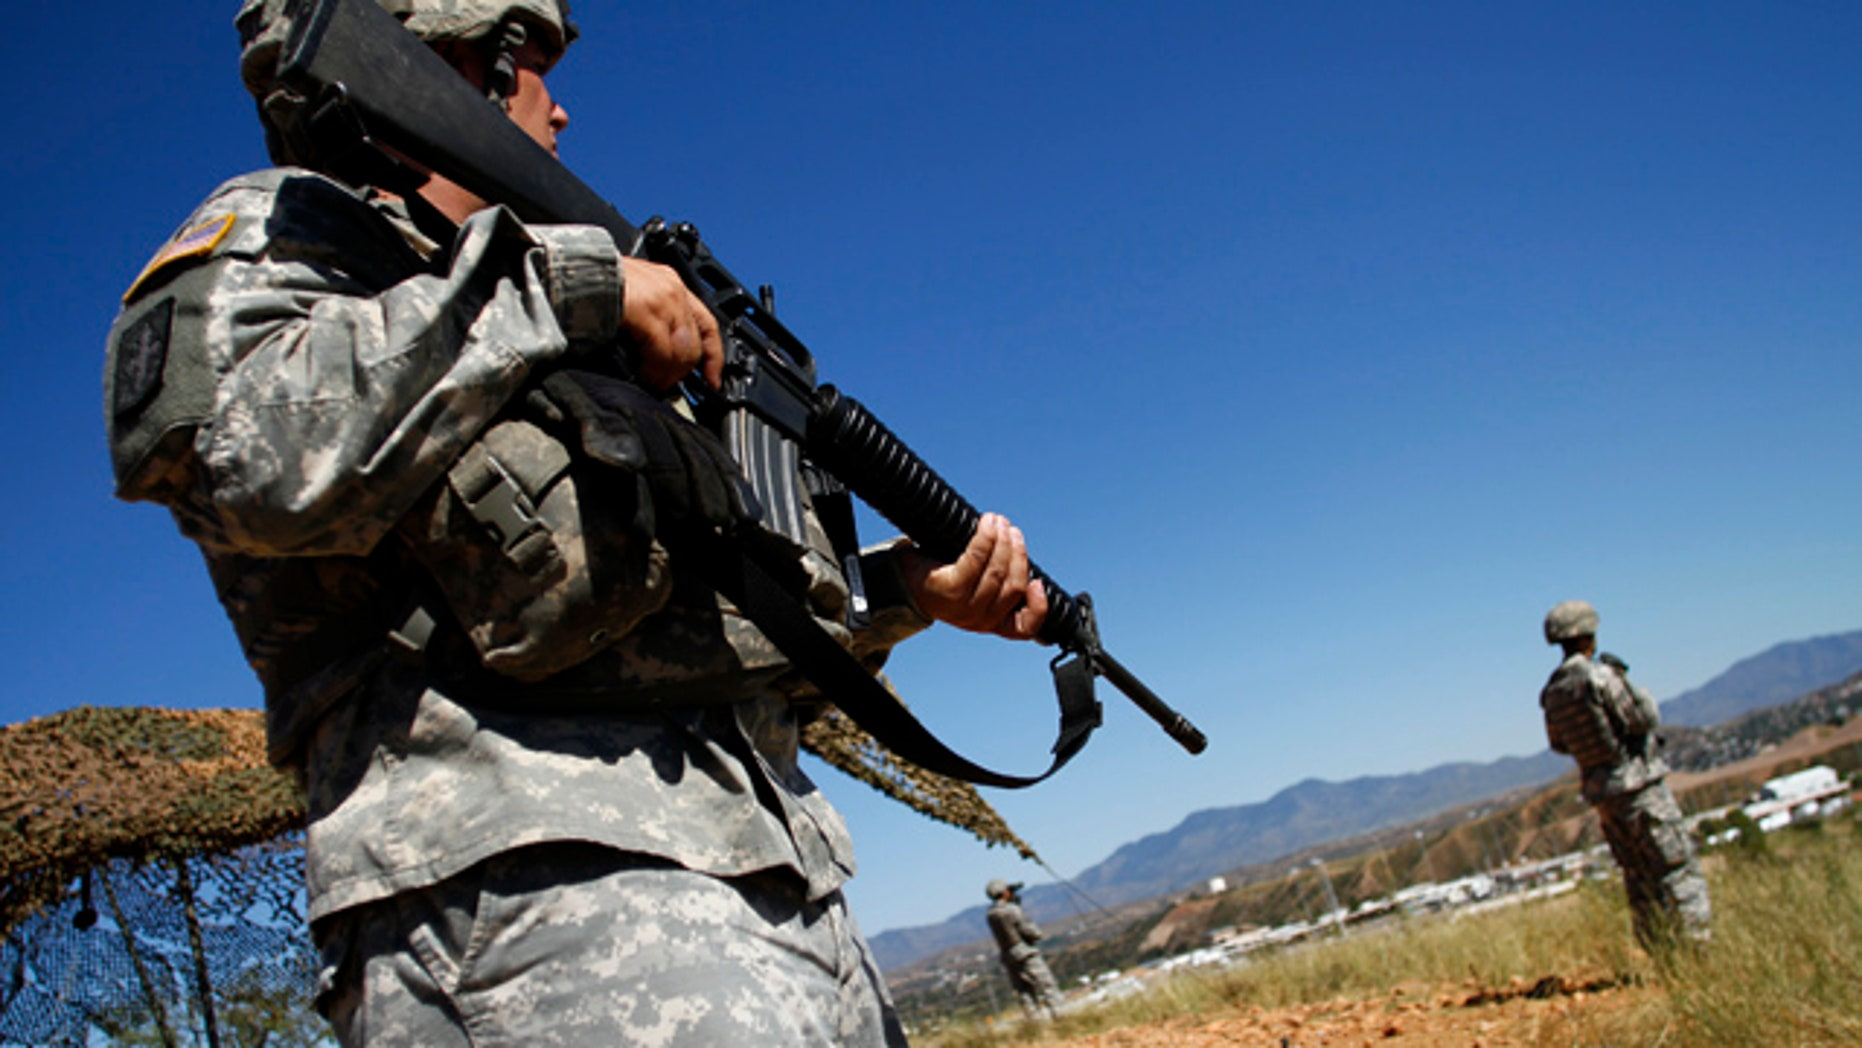 Oct. 8, 2010: National Guard troops patrol along the U.S. and Mexico border in Nogales, Ariz.